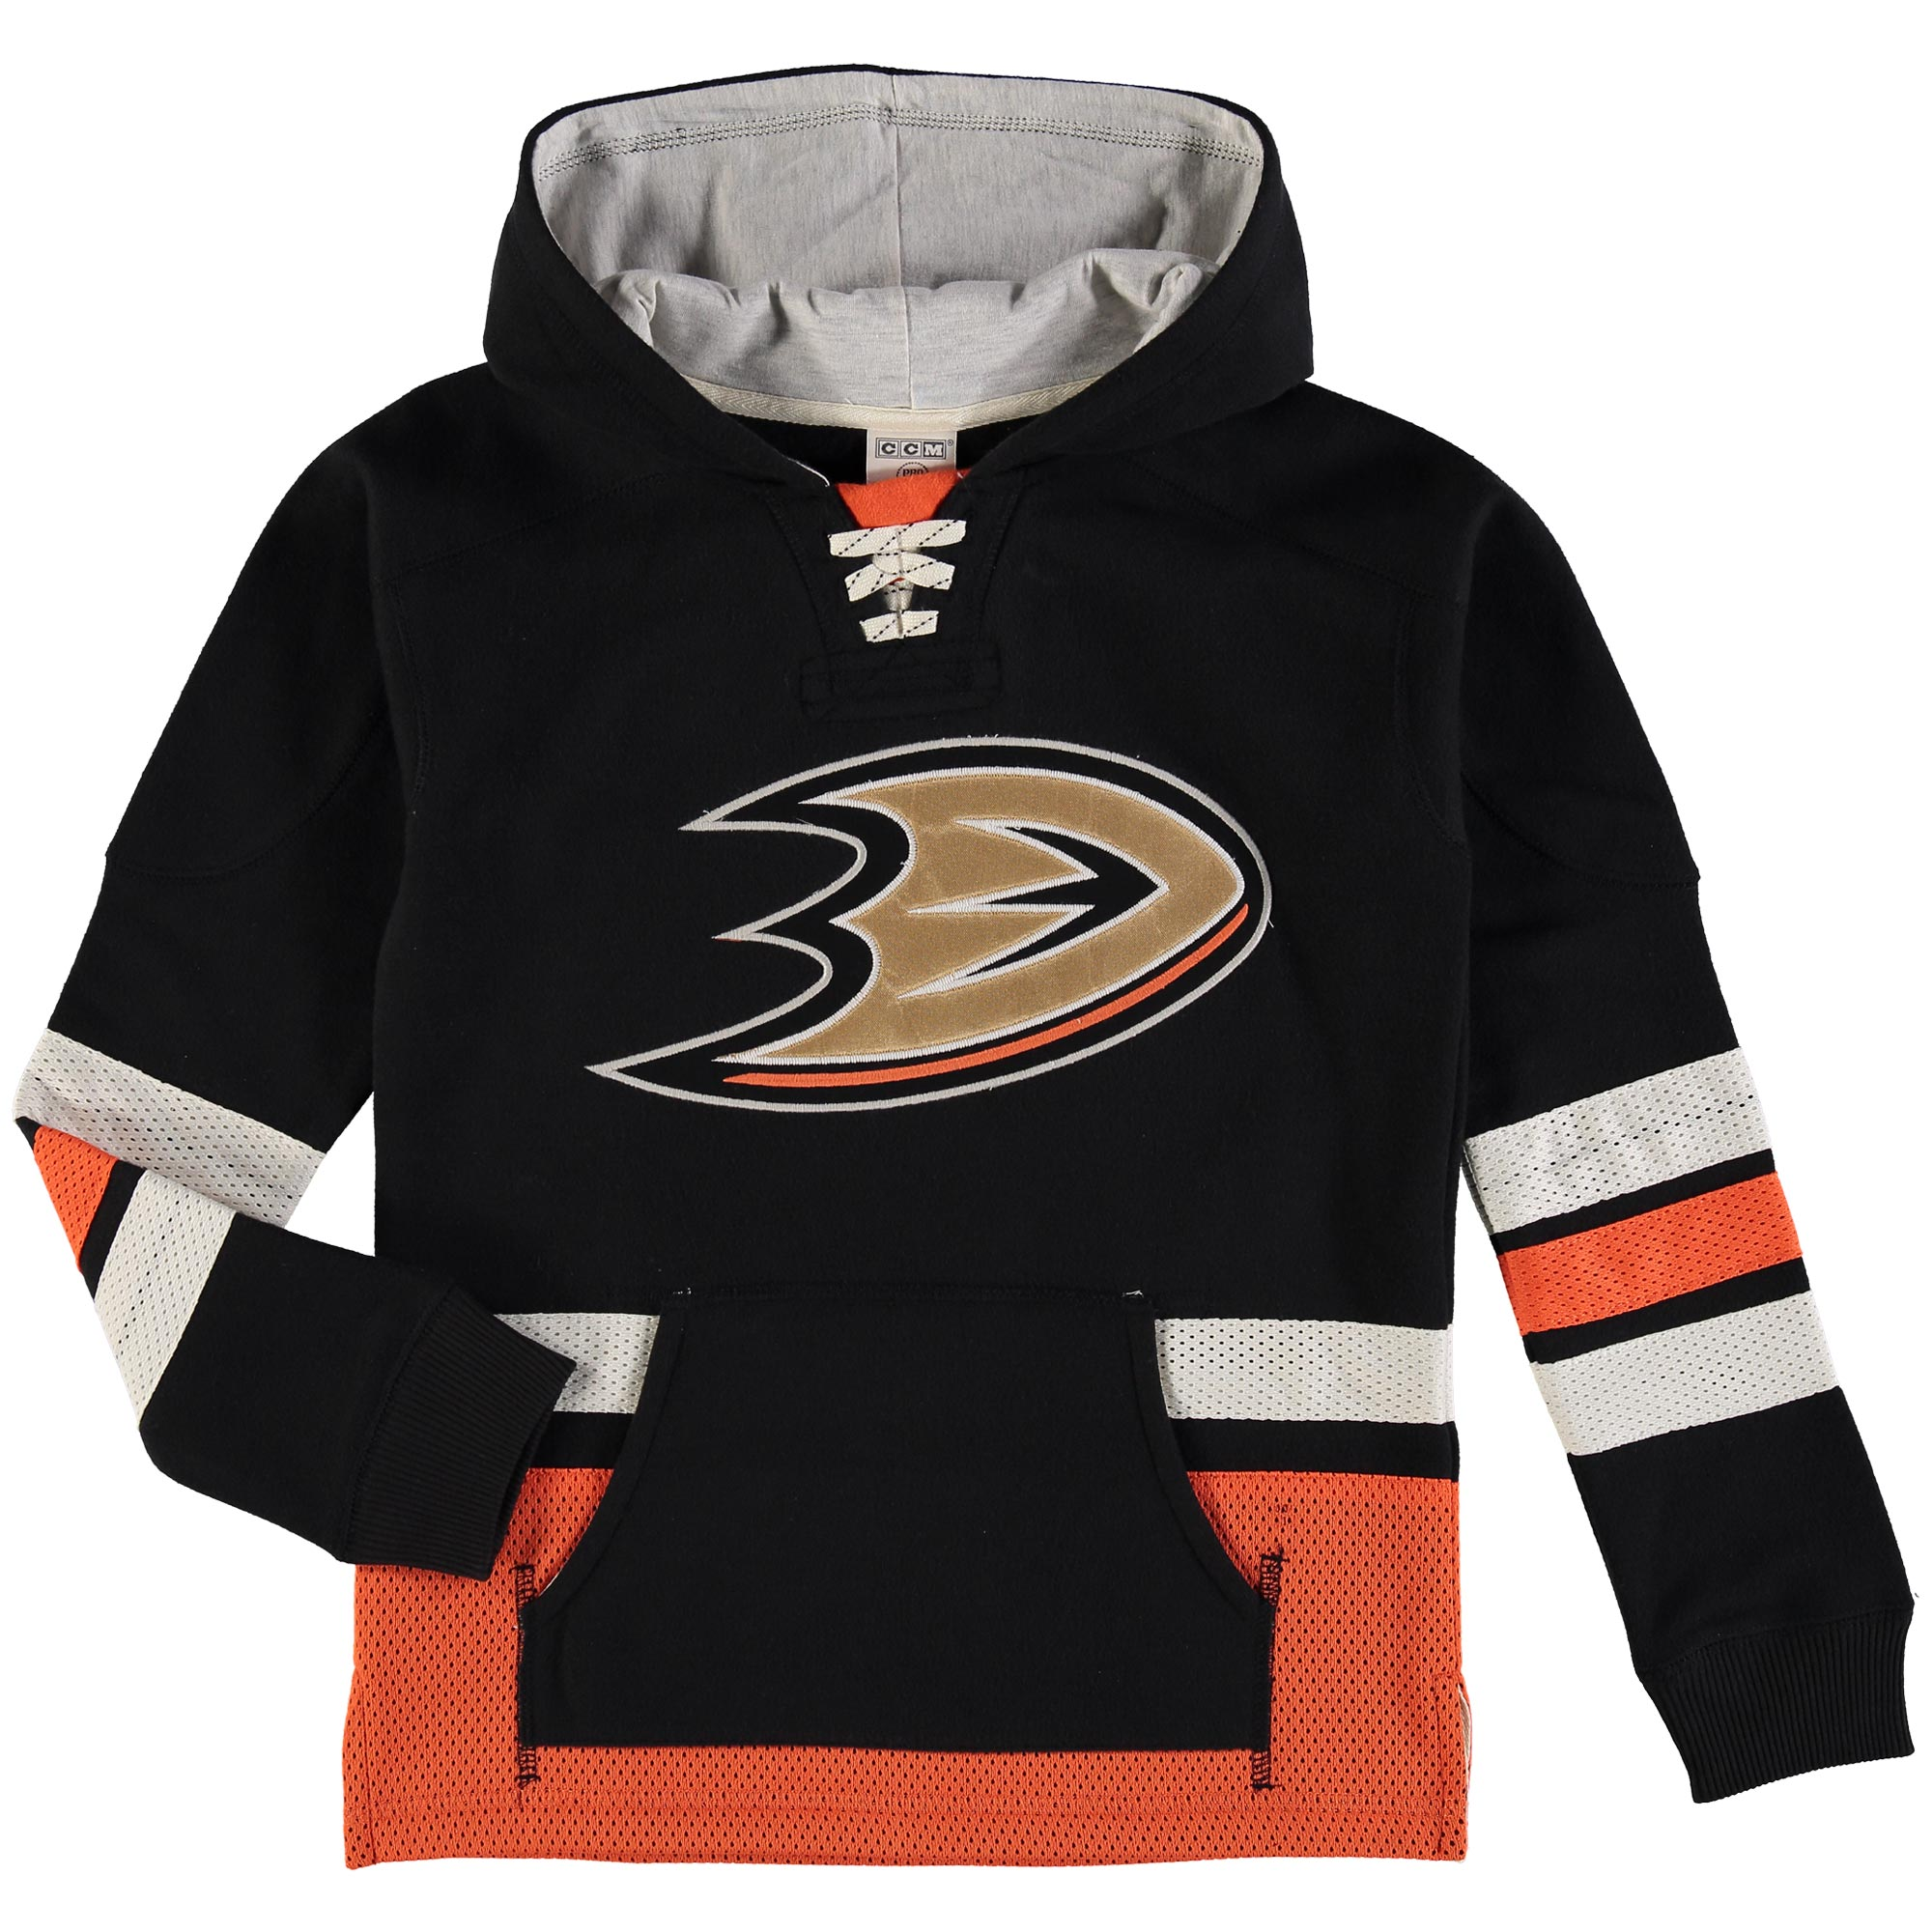 Anaheim Ducks Reebok Youth Retro Skate Hoodie Black by Outerstuff